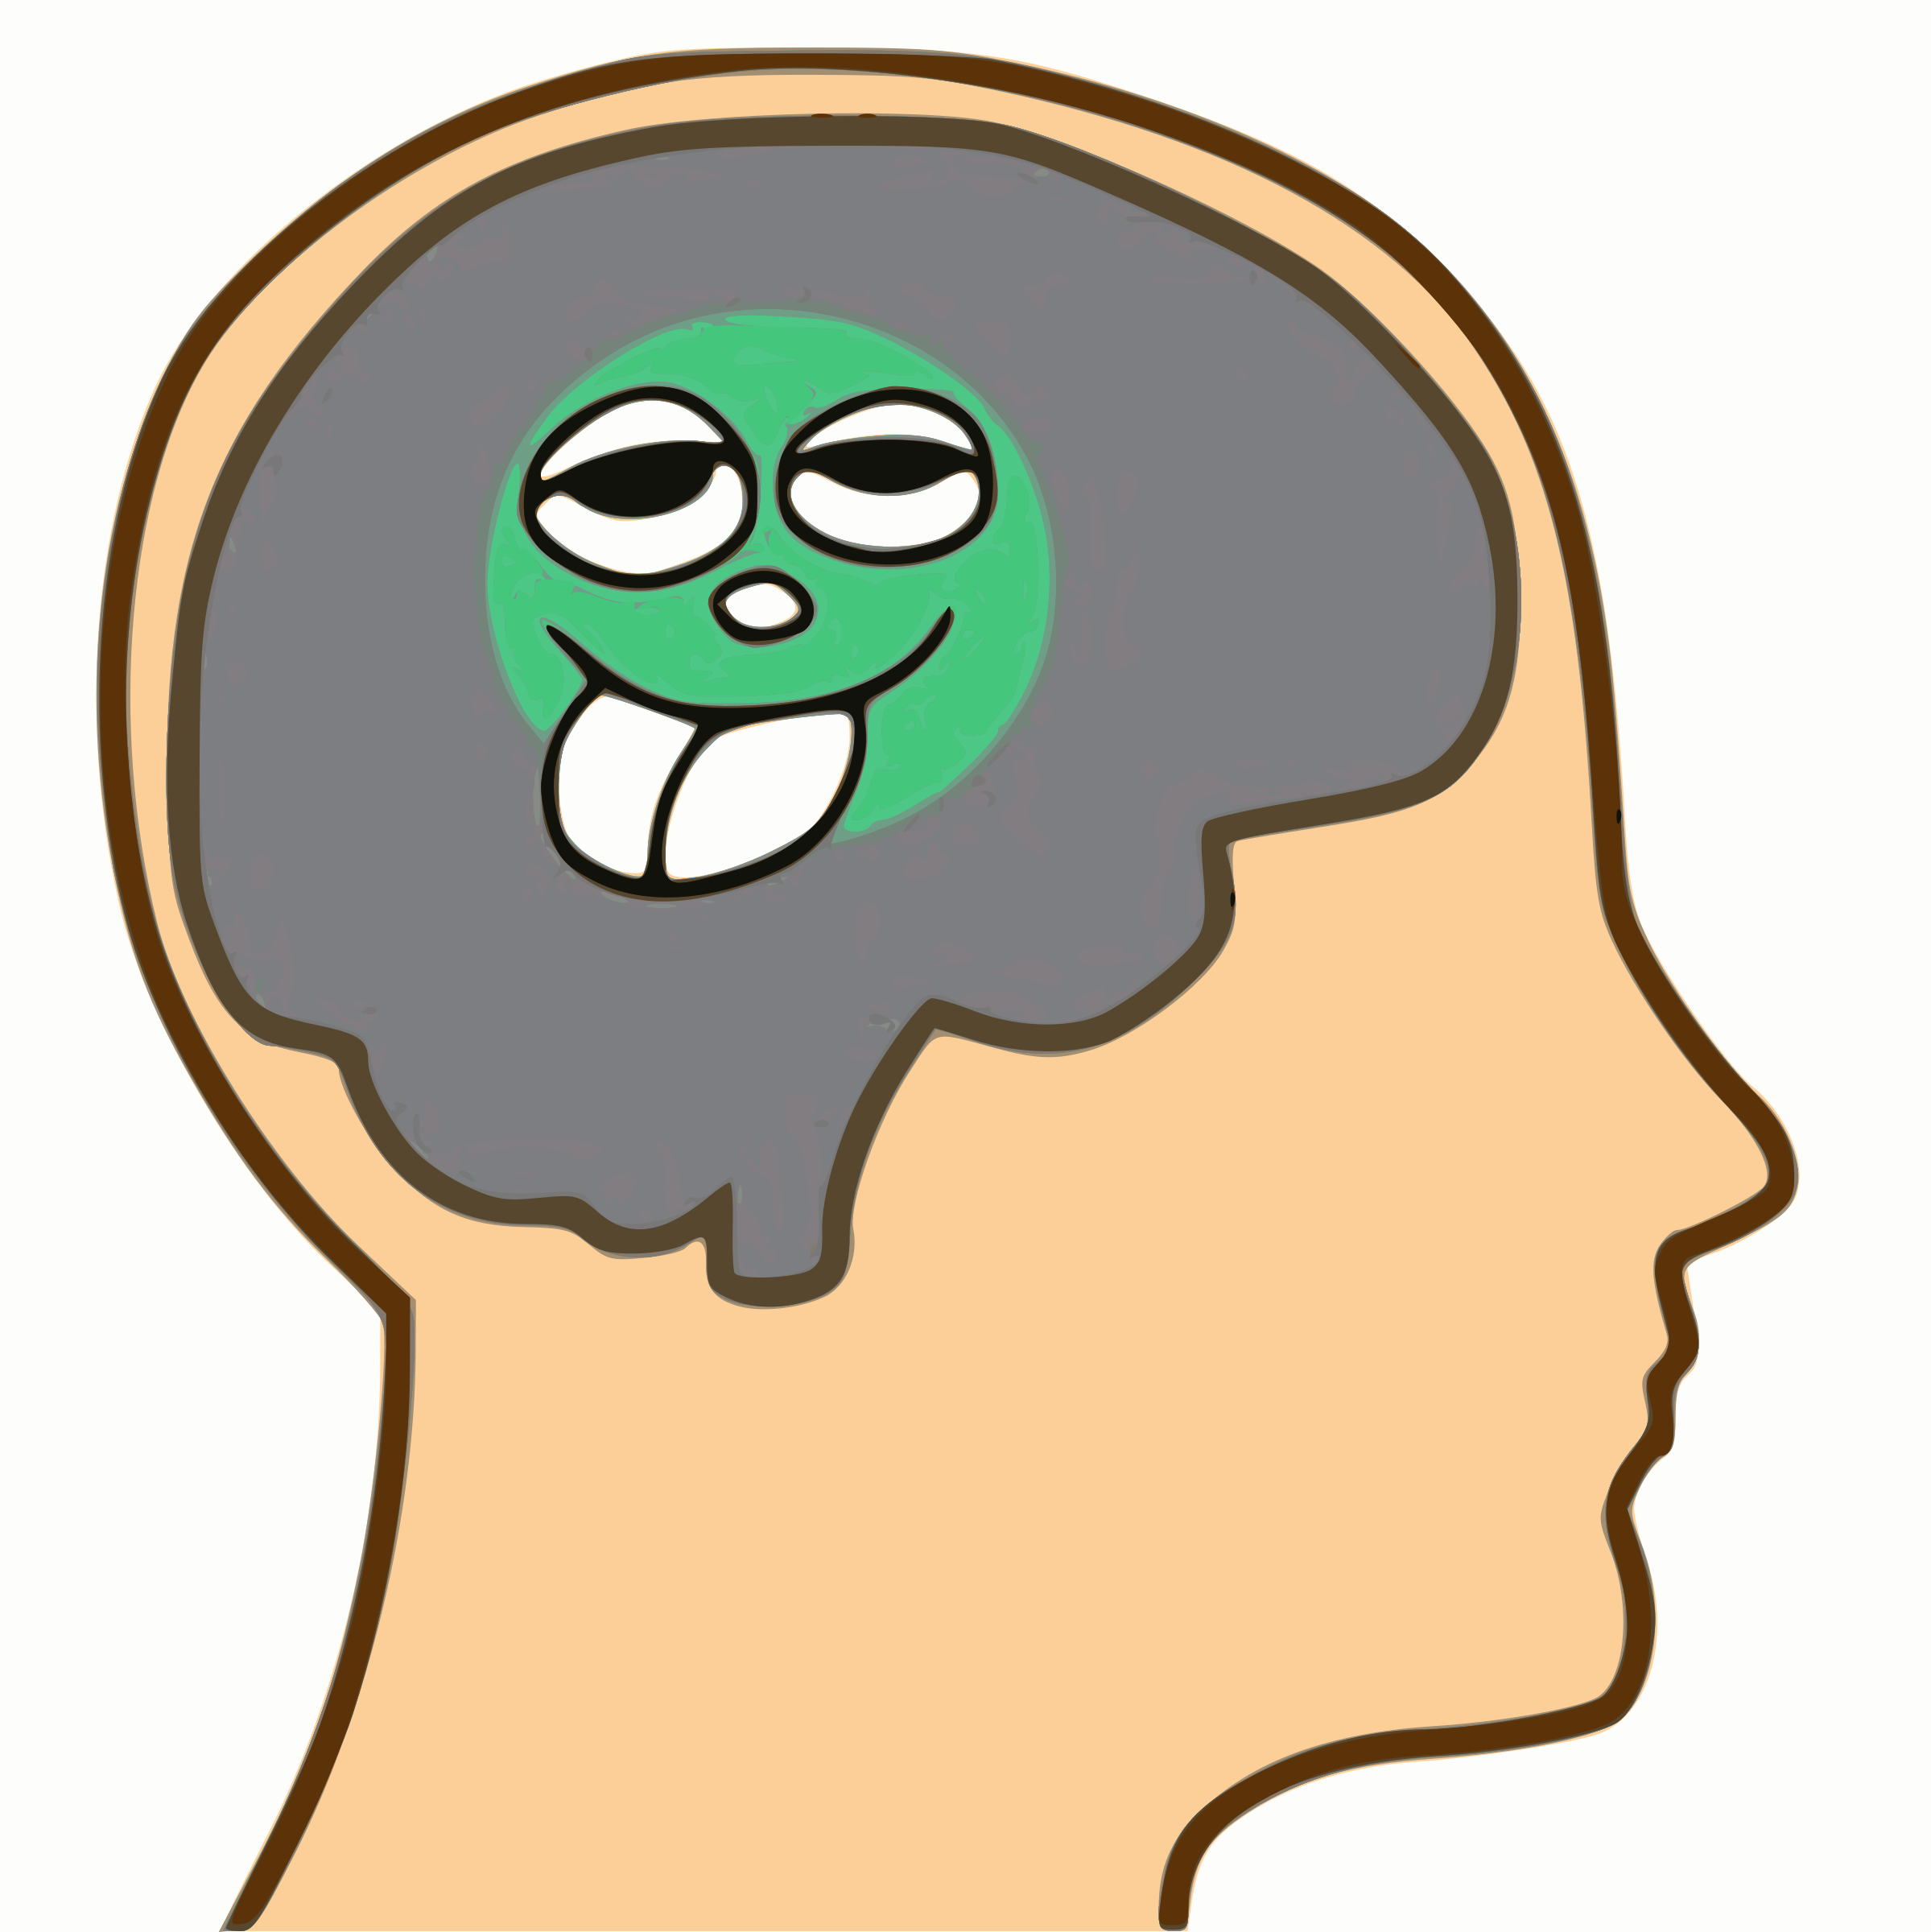 Pea-sized brain by hefedute